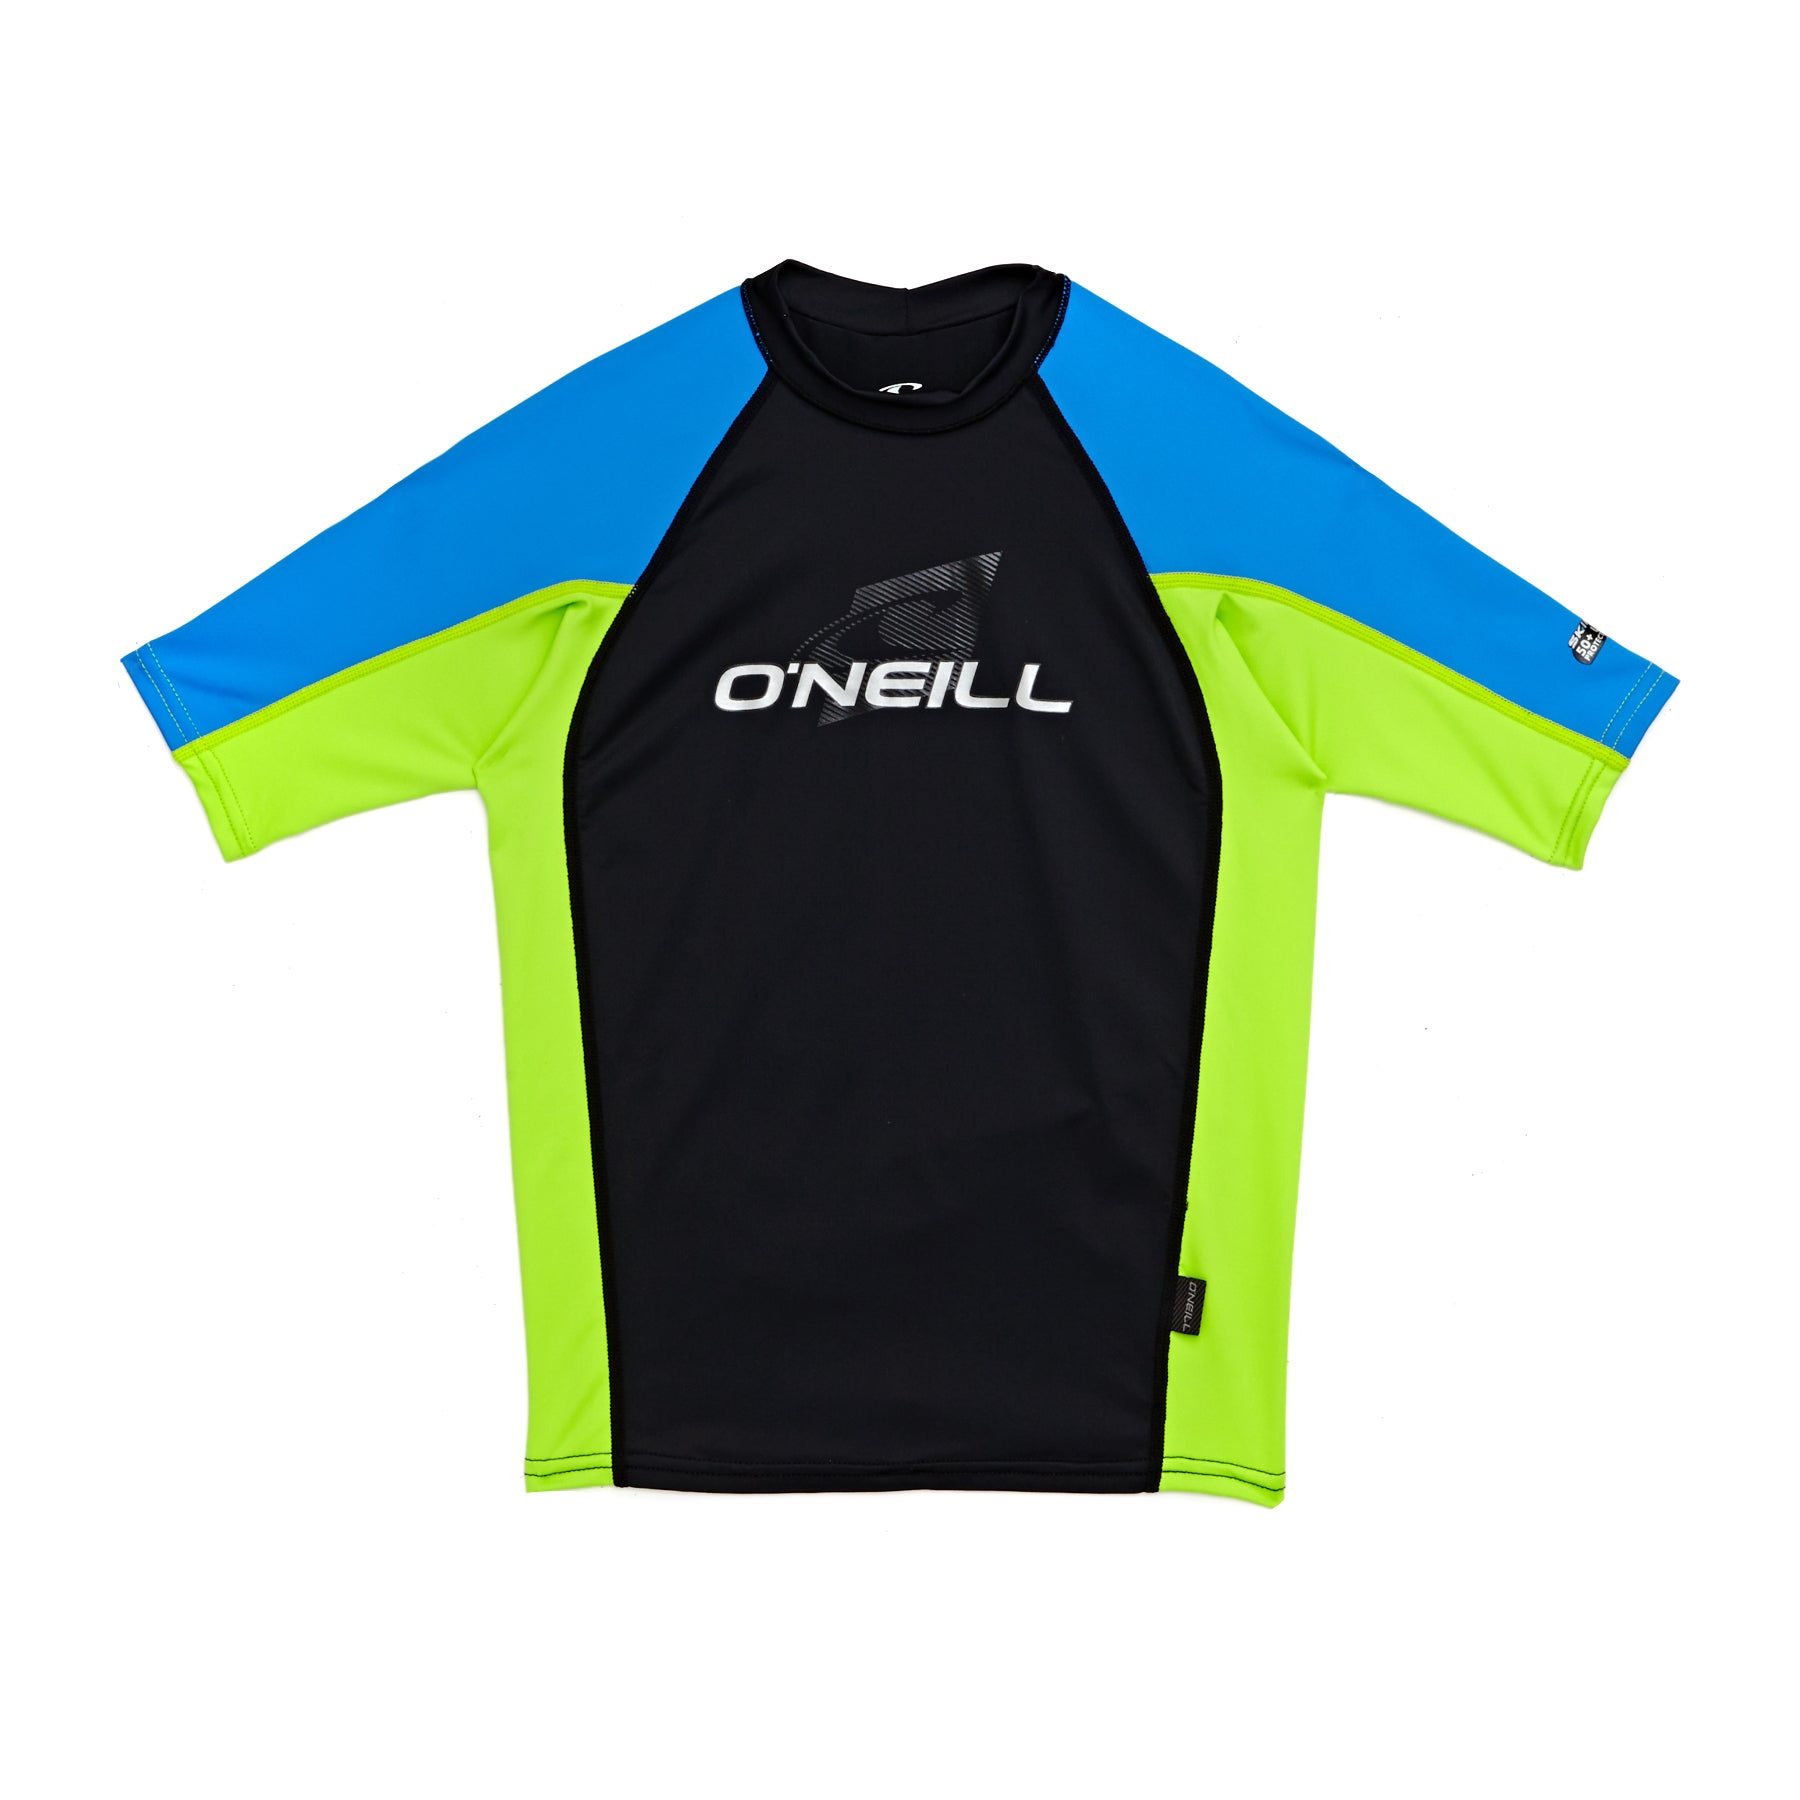 O Neill Skins Short Sleeve Crew Boys Rash Vest - Black/ Lime/ Bright Blue